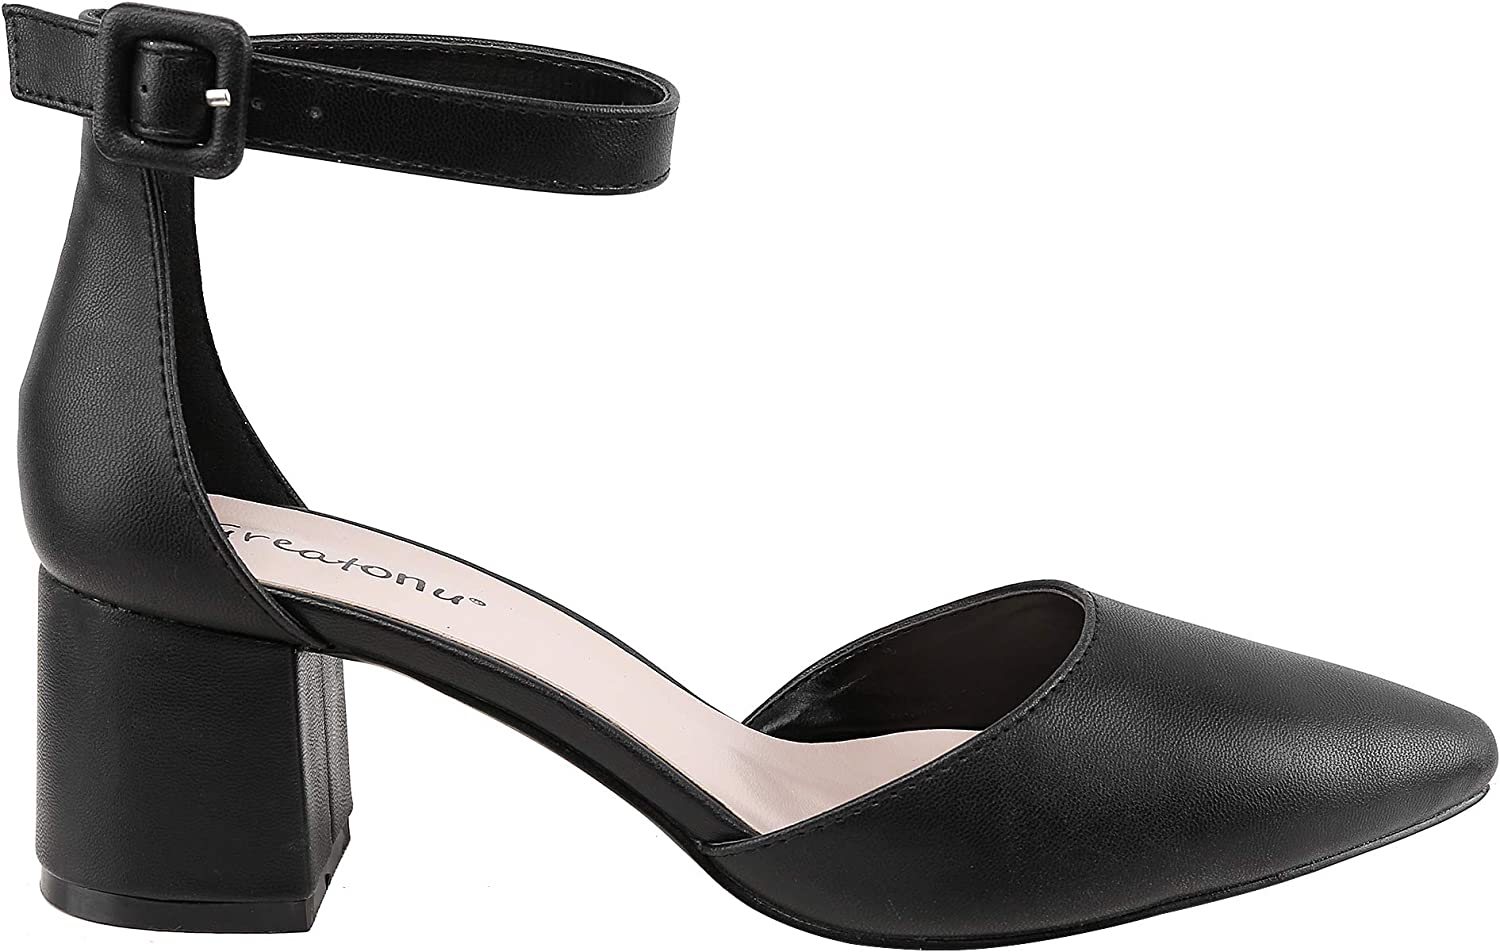 Greatonu Women's Court Shoes with Ankle Strap, Block Heel